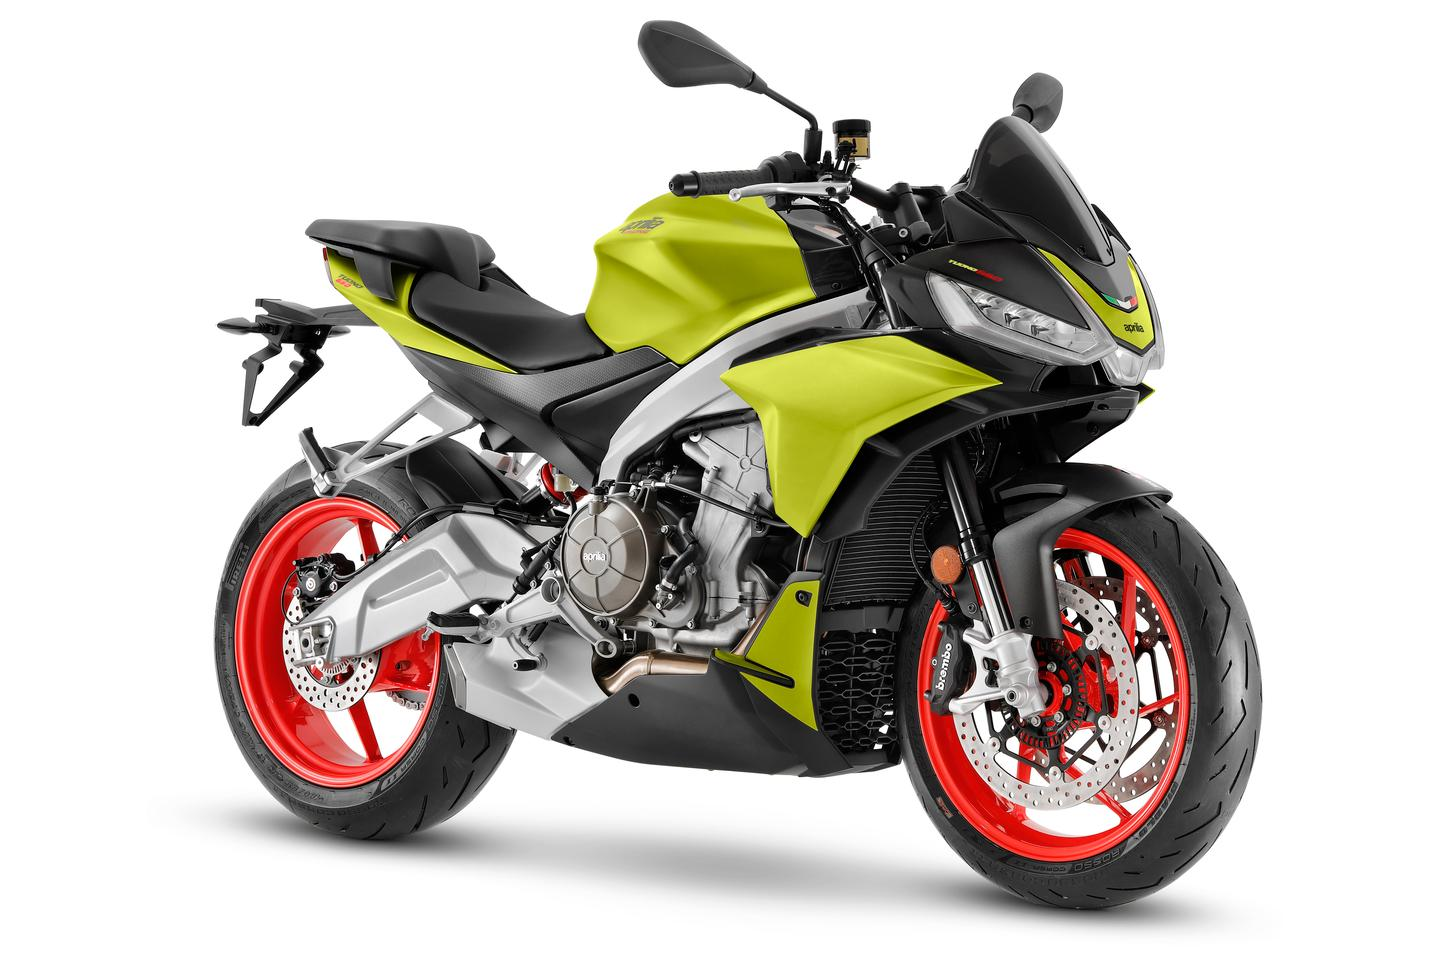 Aprilia expands the Tuono family to the middle capacity class with the 2021 Tuono 660